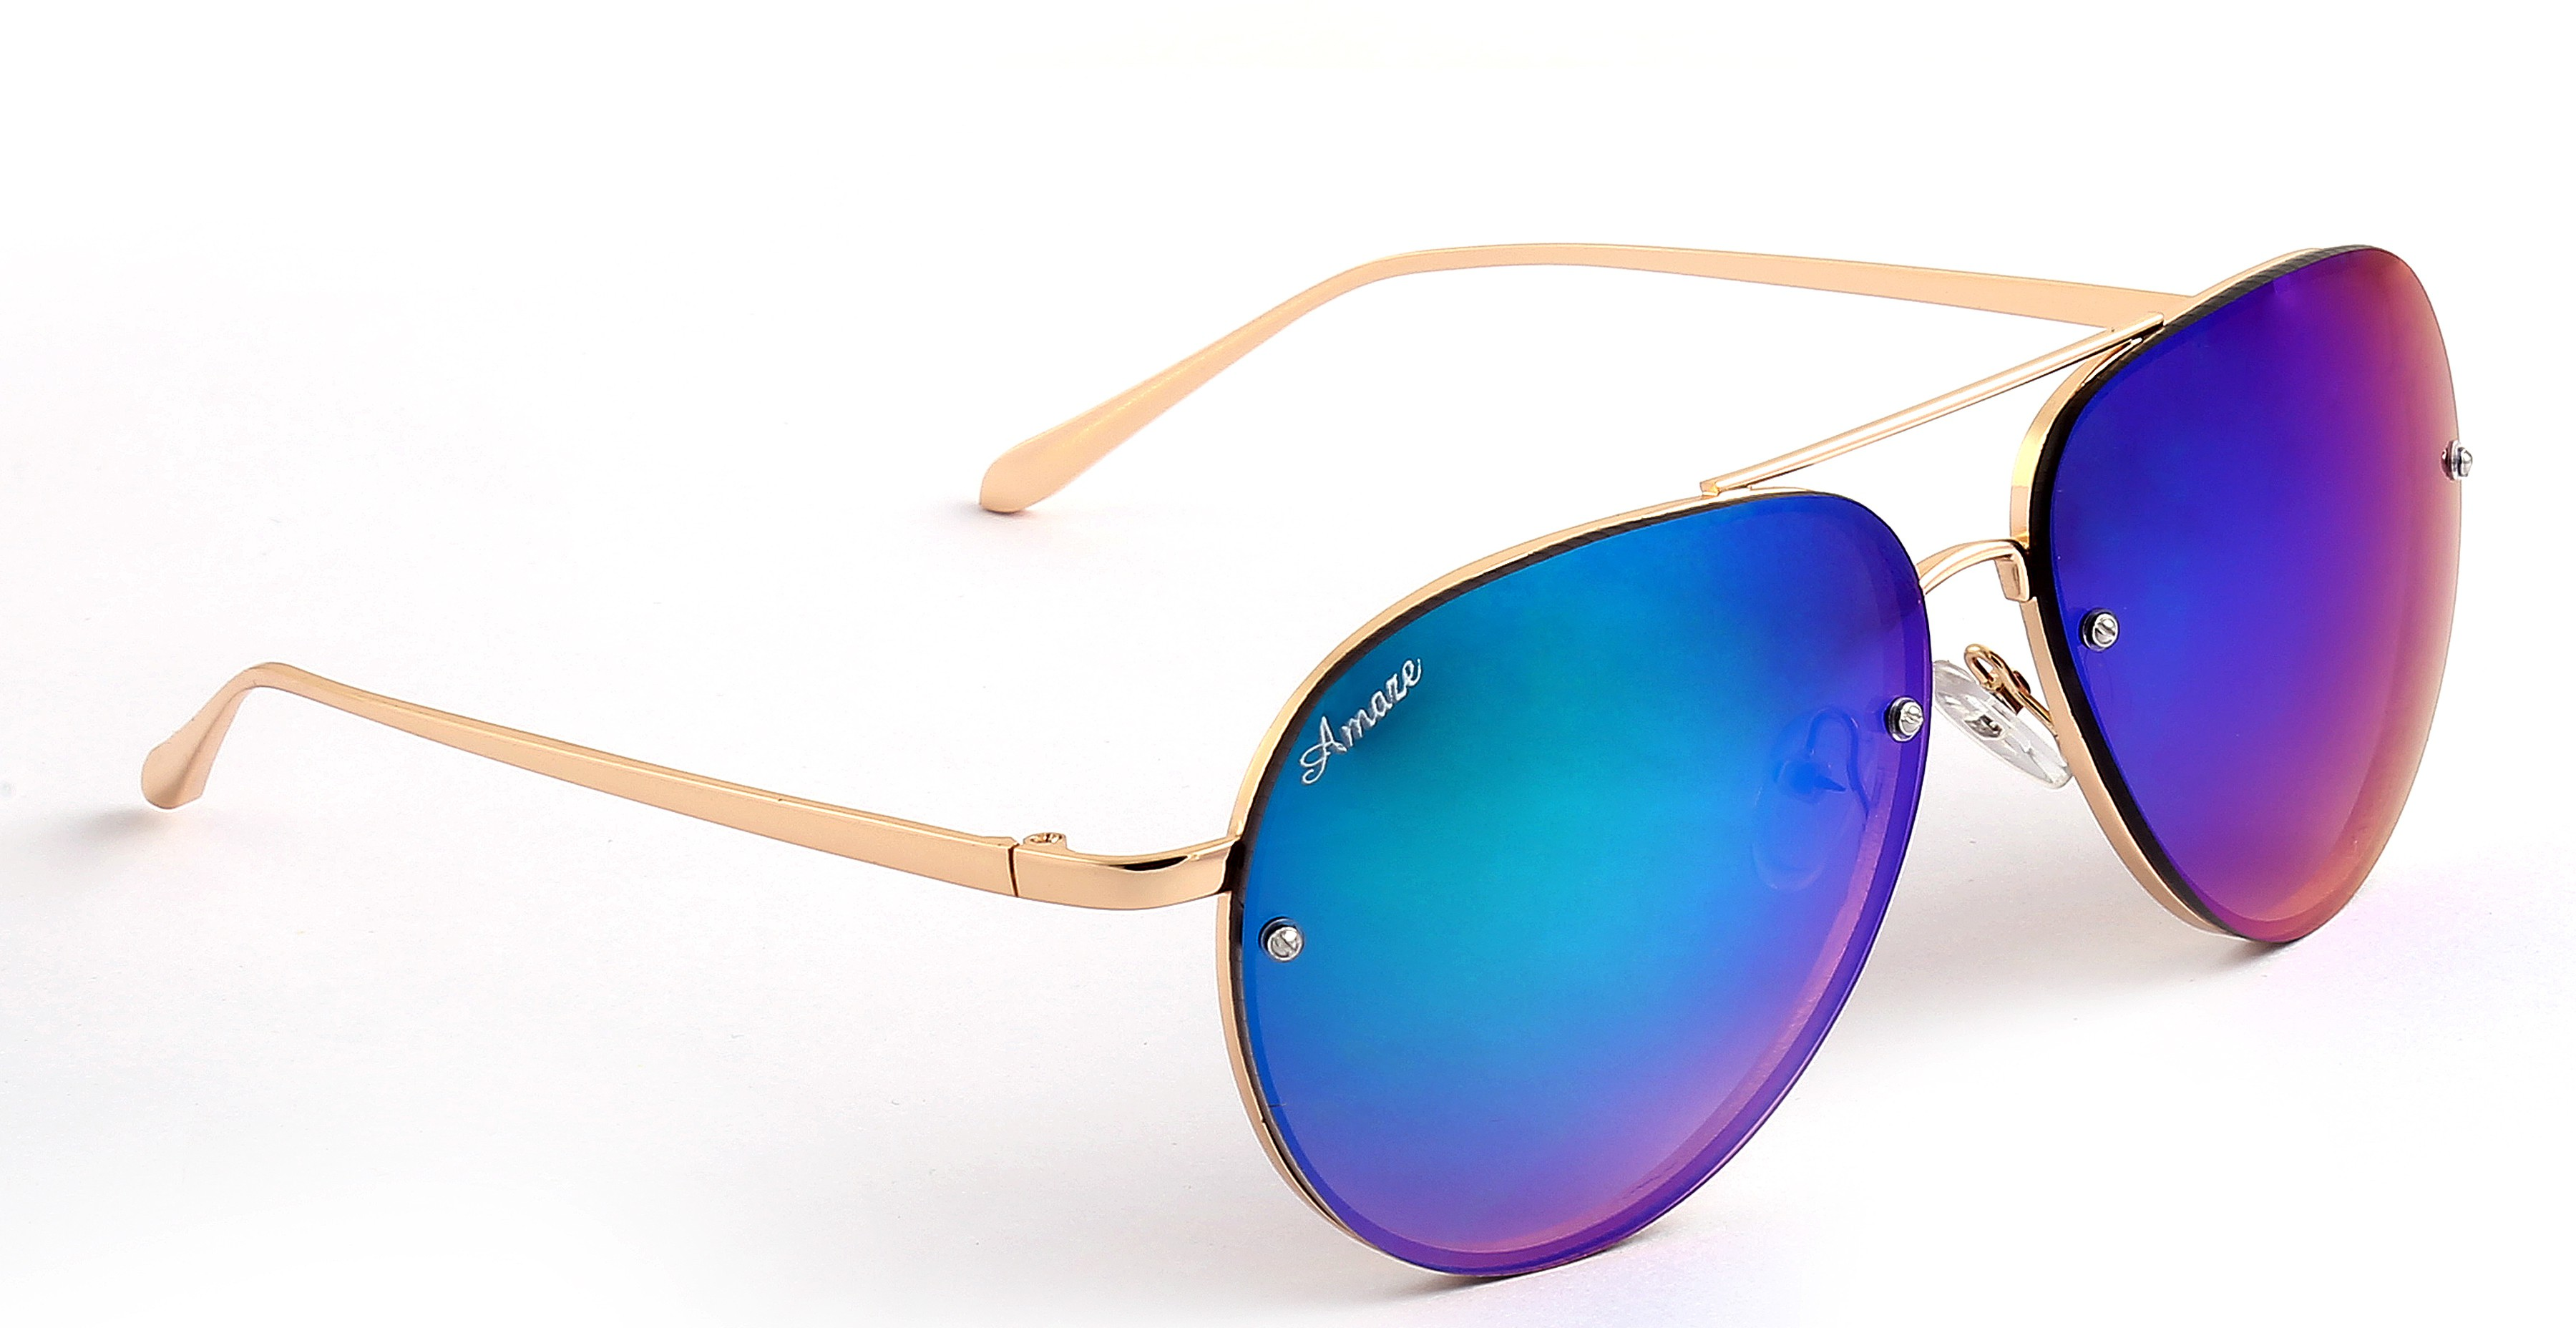 Deals - Delhi - Amaze, Gansta... <br> Sunglasses<br> Category - sunglasses<br> Business - Flipkart.com